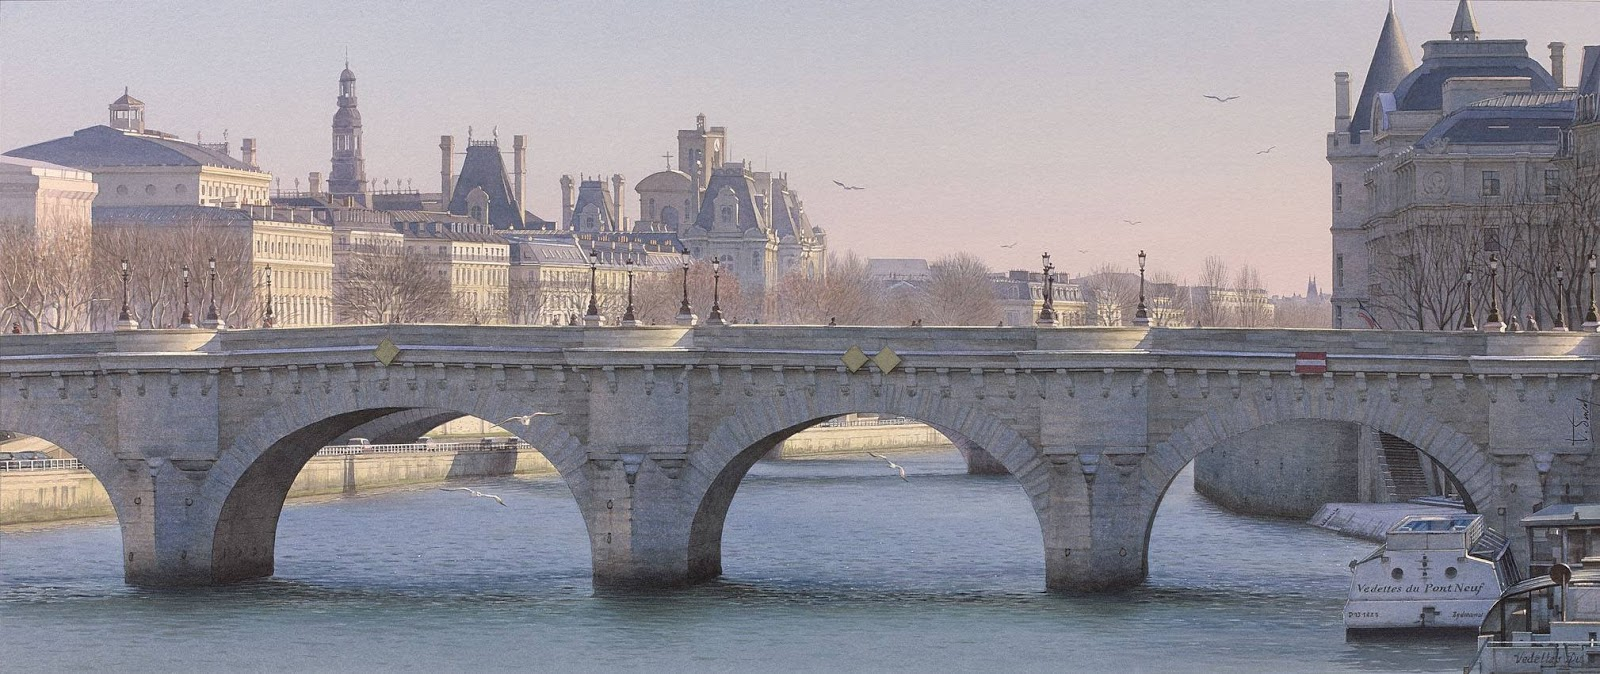 9 seagulls and the Pont Neuf, ?